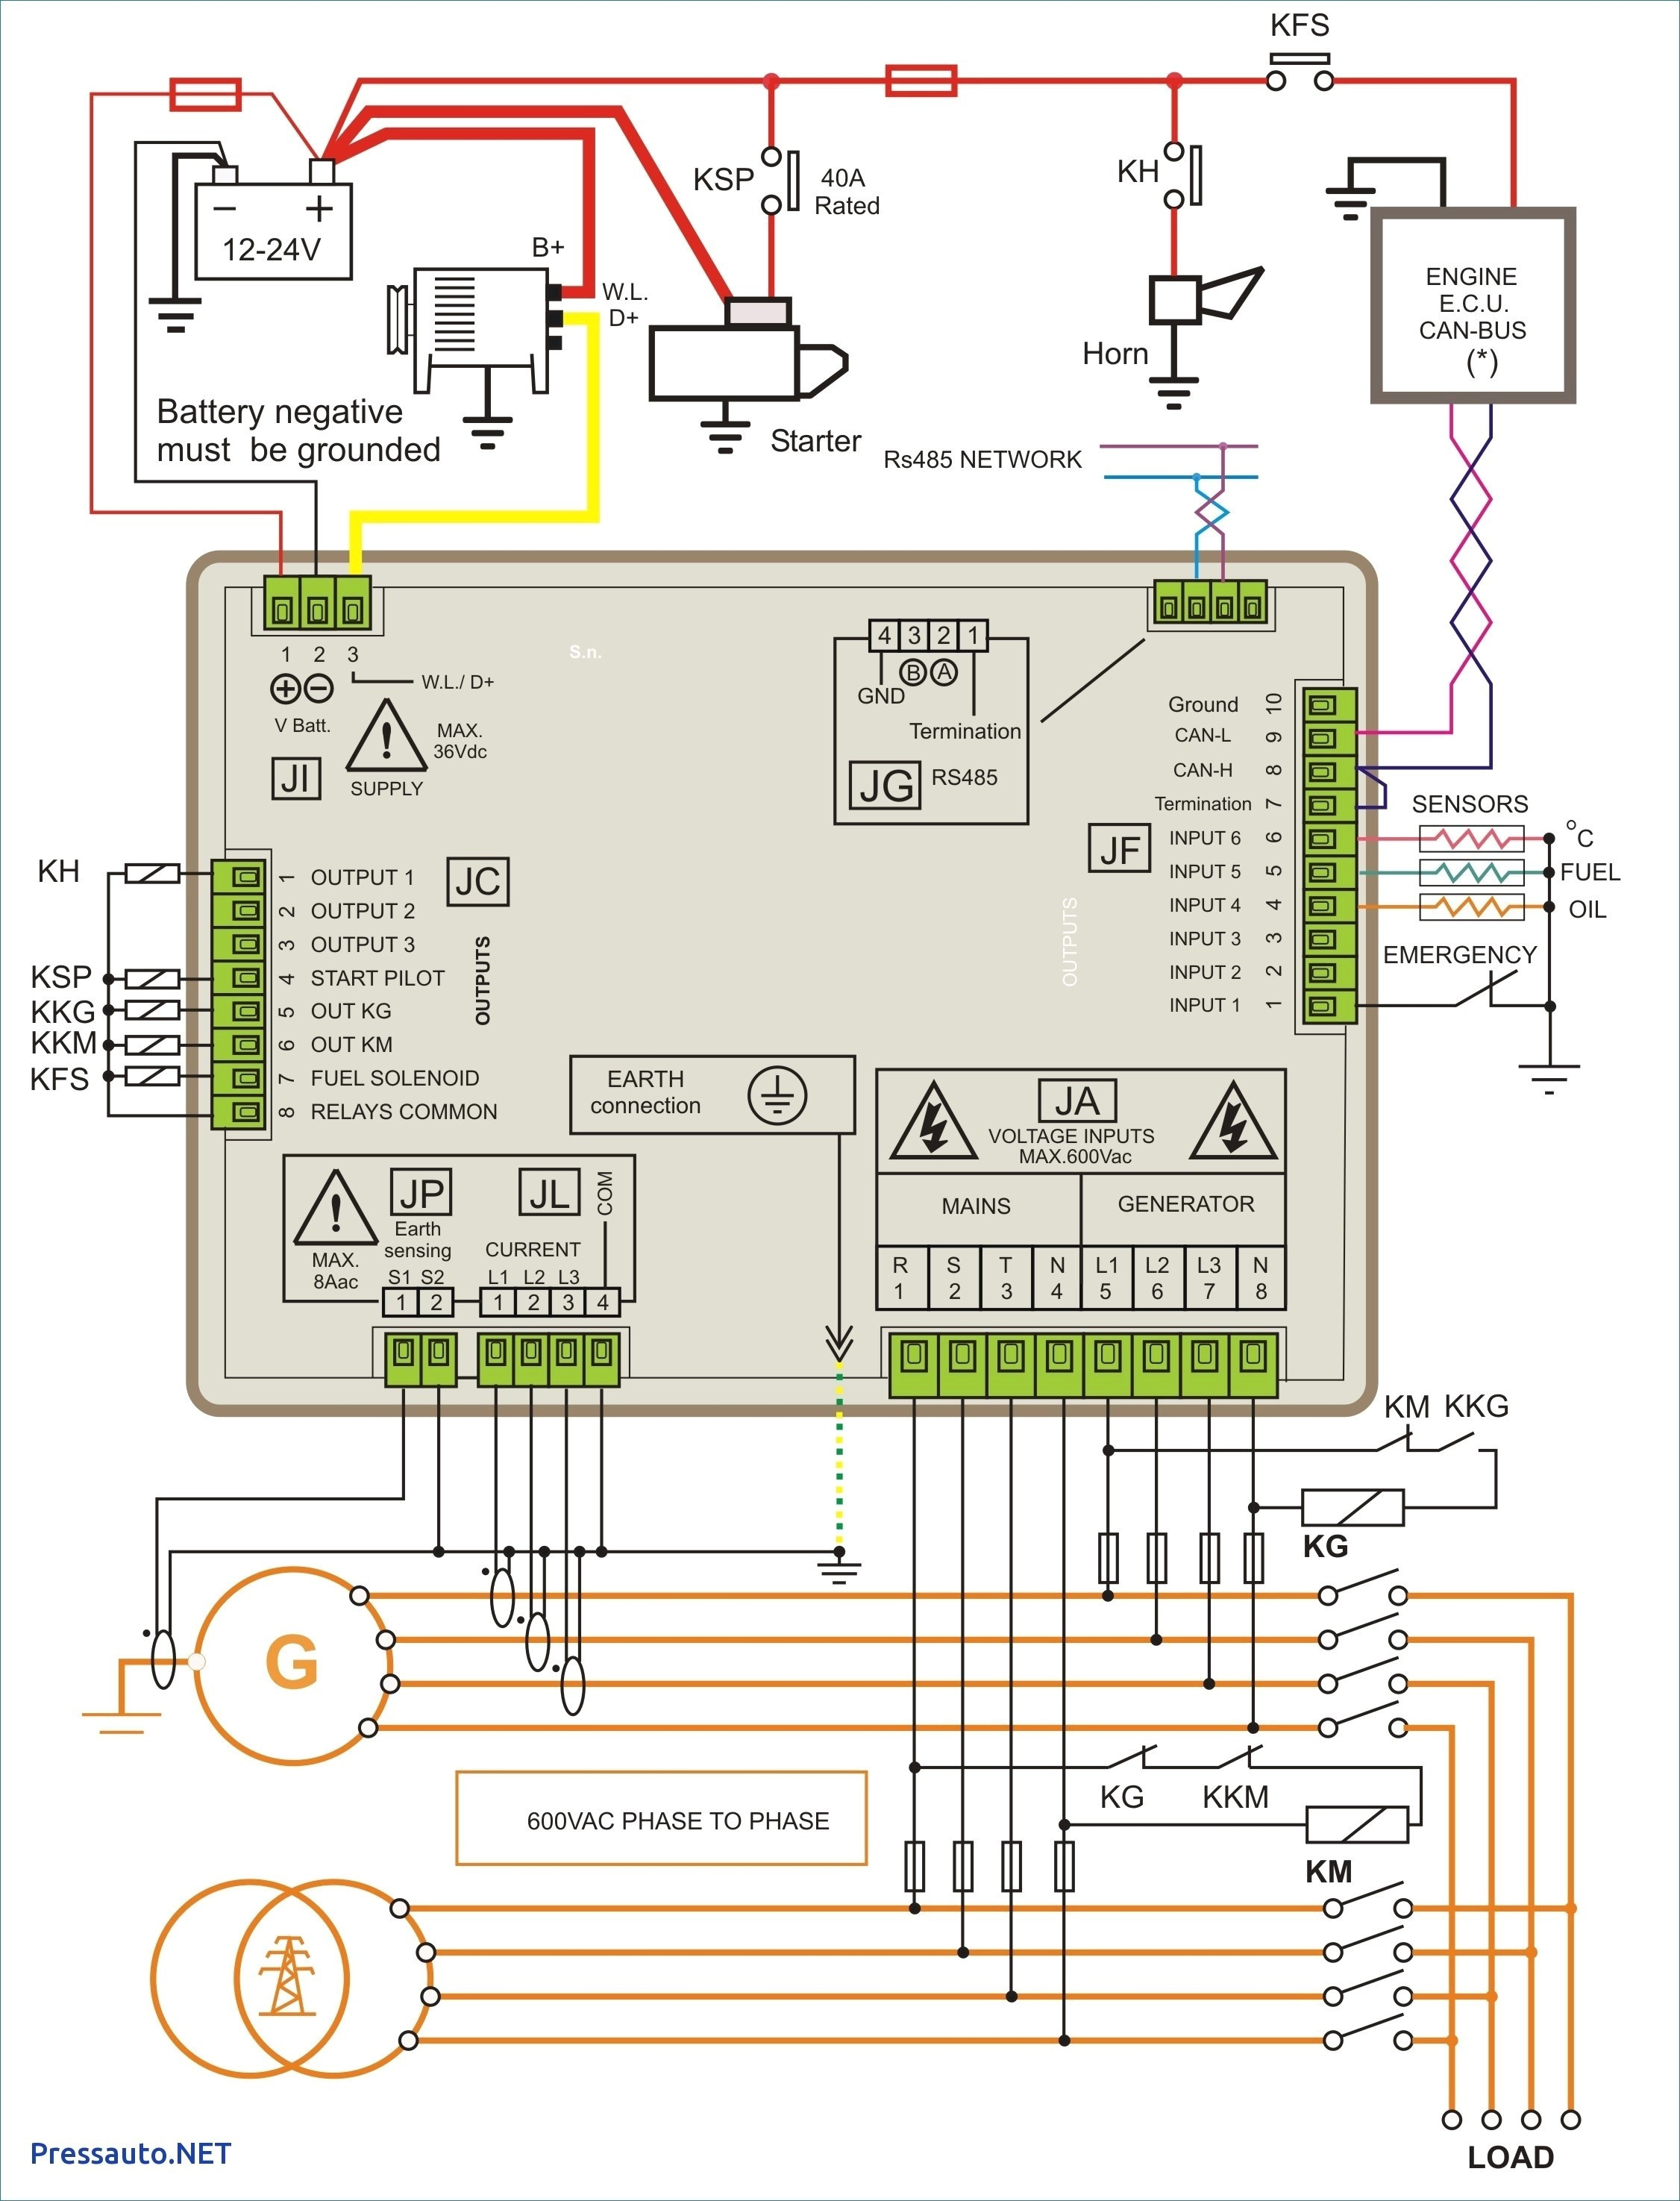 auto electrical wiring diagram software Download-Automotive Wiring Diagram line Simple Electronic Circuit Diagram Maker Line Refrence Electronic Circuit 9-j